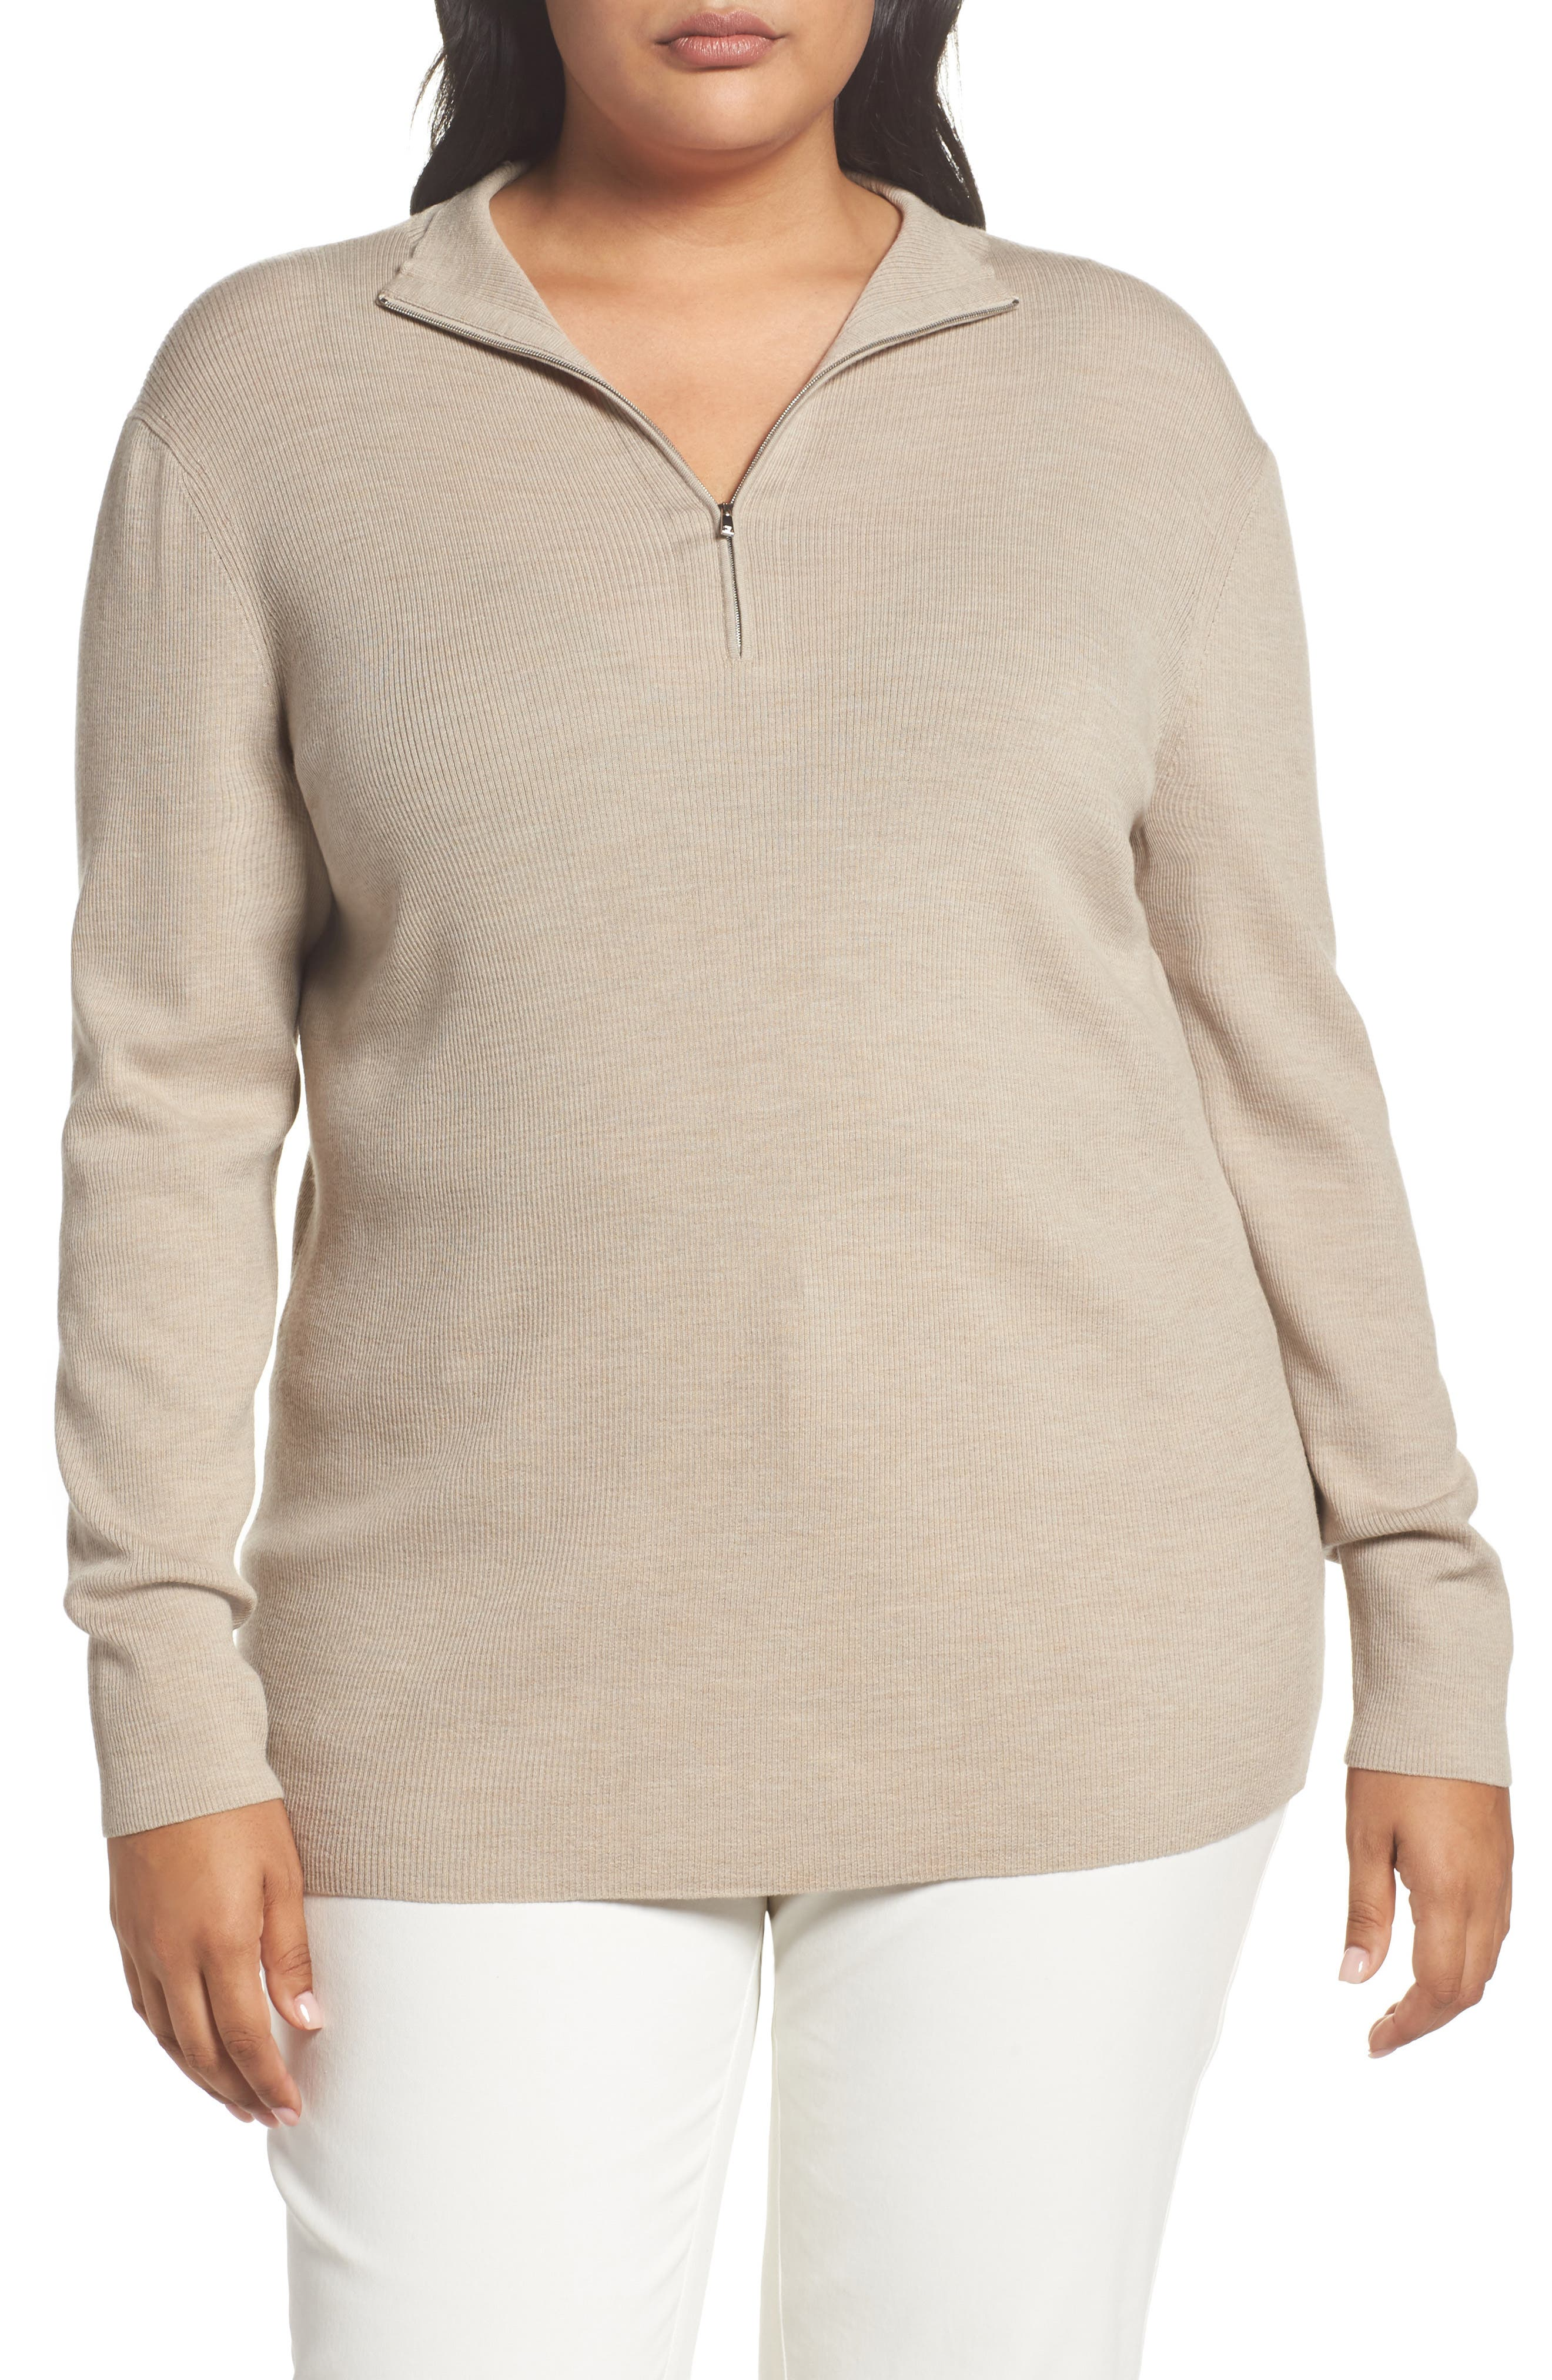 Alternate Image 1 Selected - Lafayette 148 New York Skinny Ribbed Pullover (Plus Size)